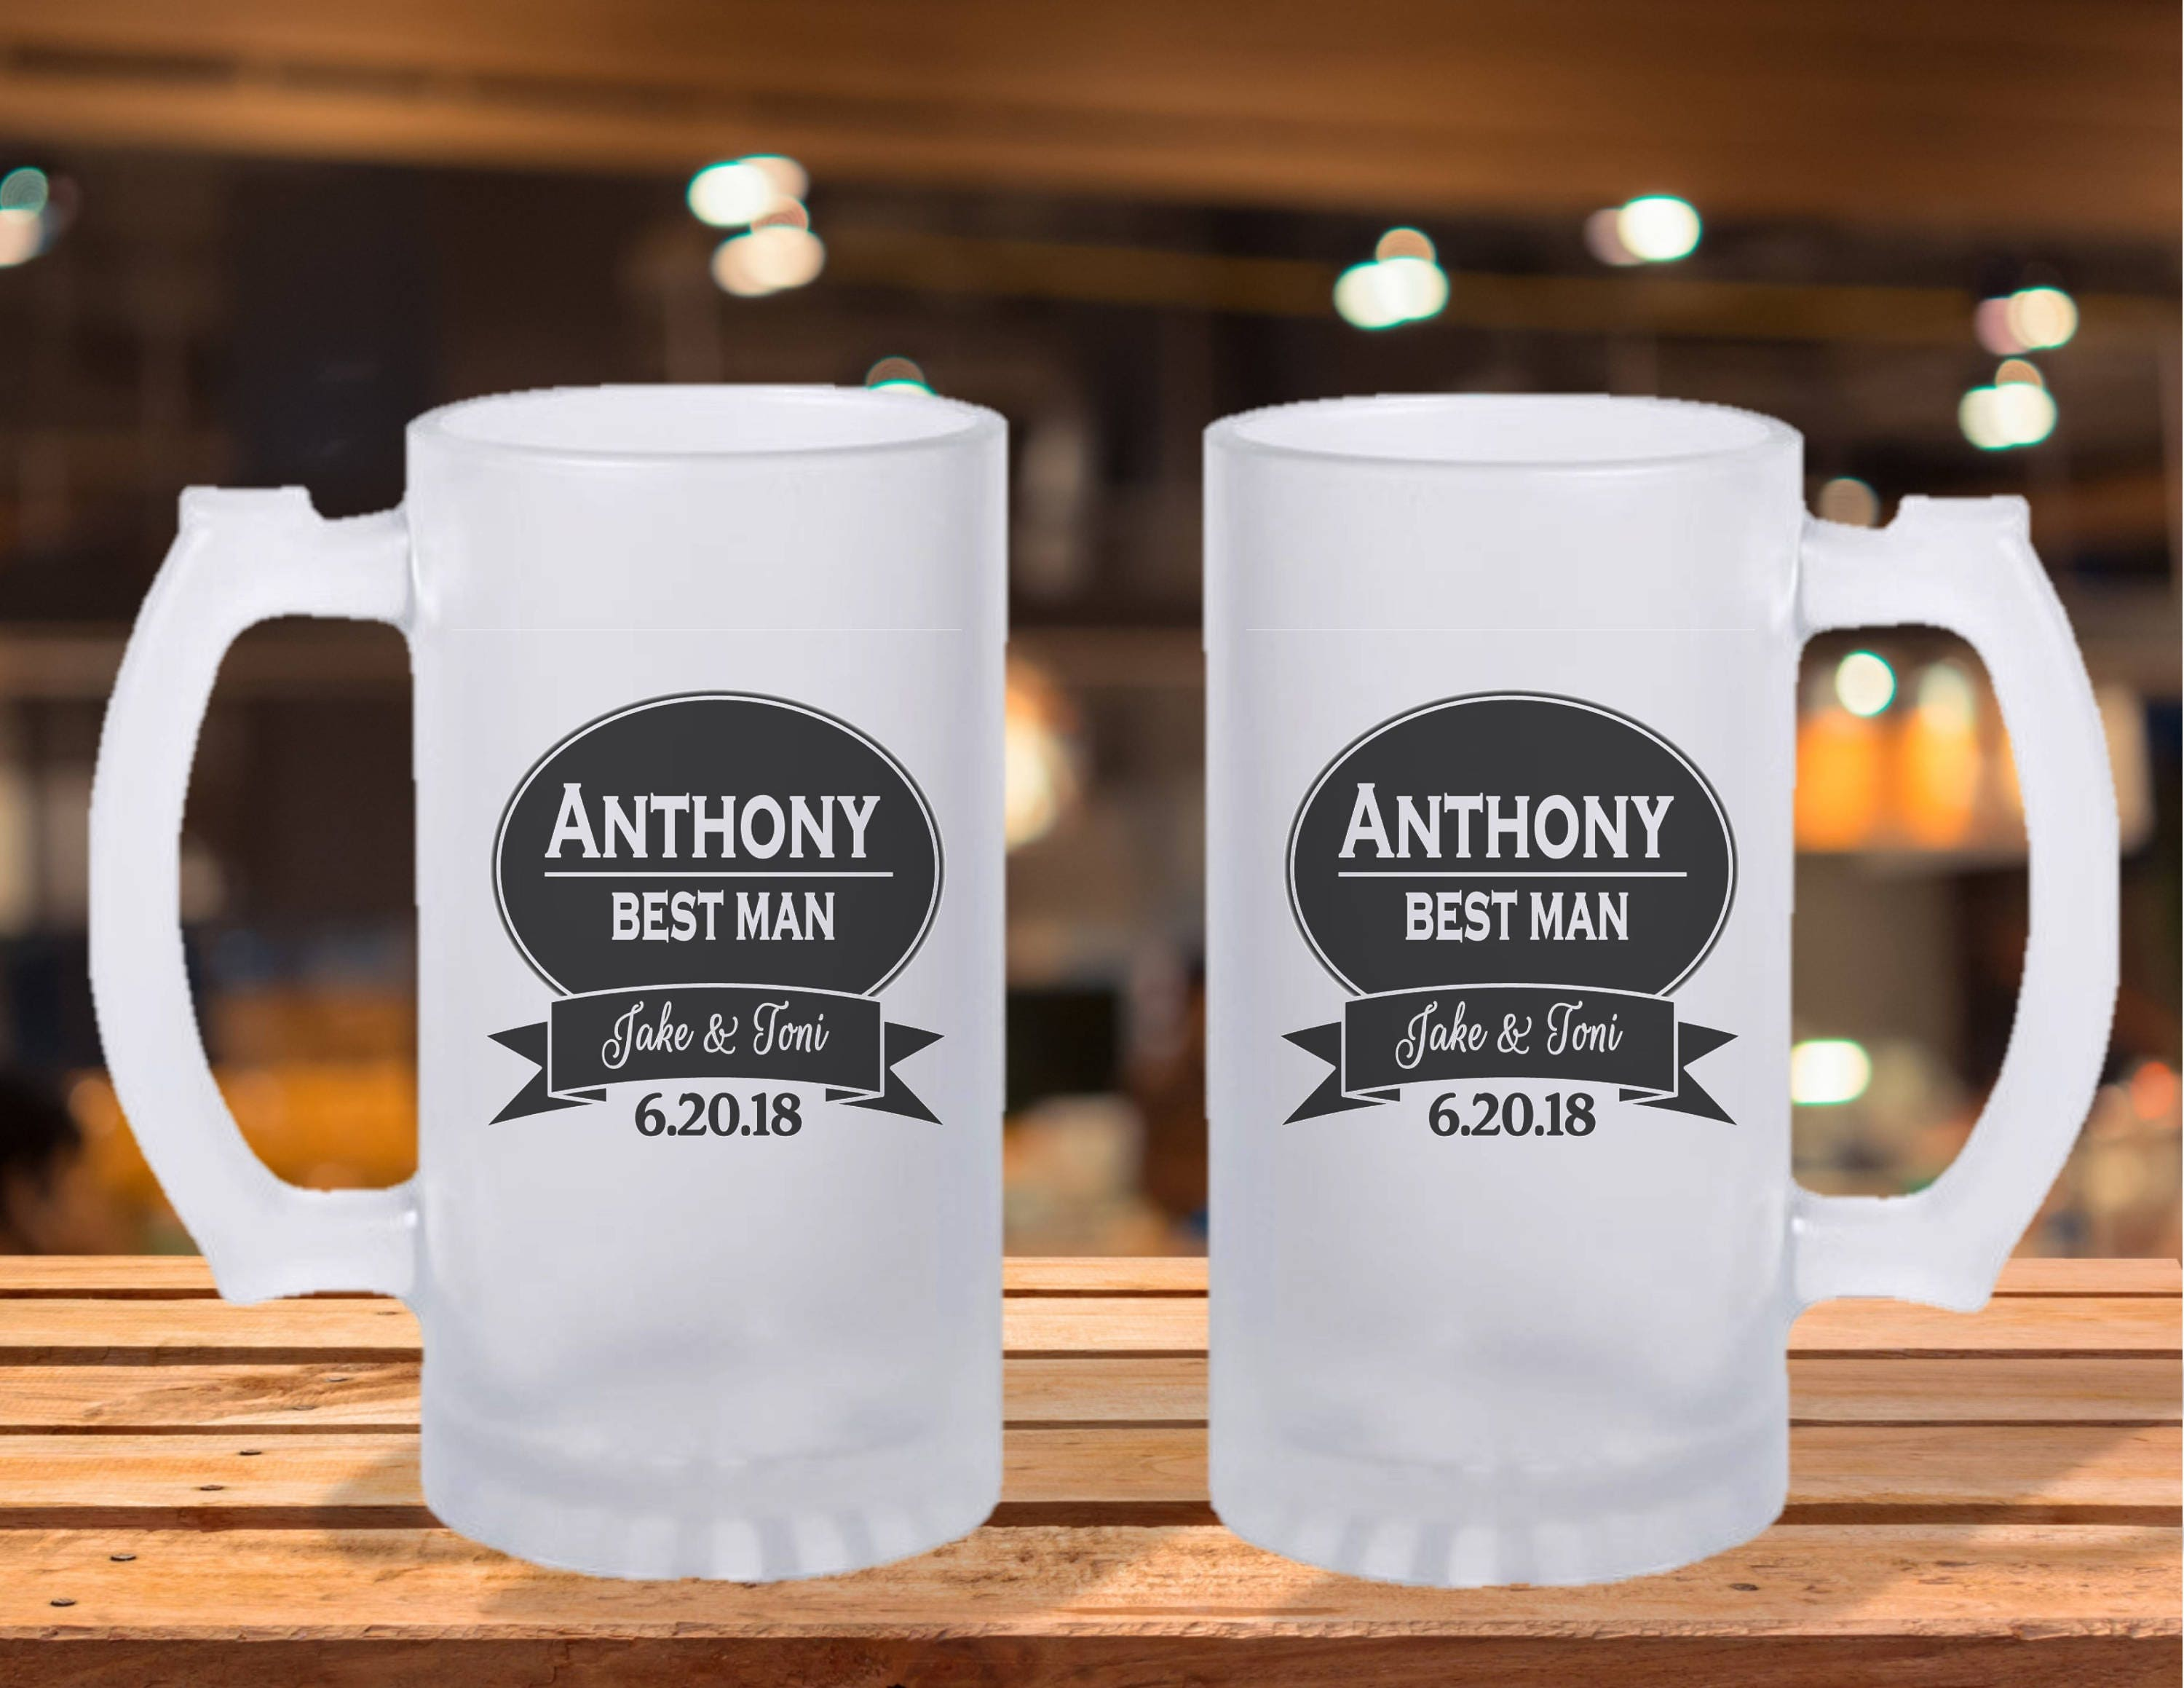 Wedding Party Gift Ideas Groomsmen: Frosted Stein Mug Groomsman Gift Ideas, Groomsman Beer Mug